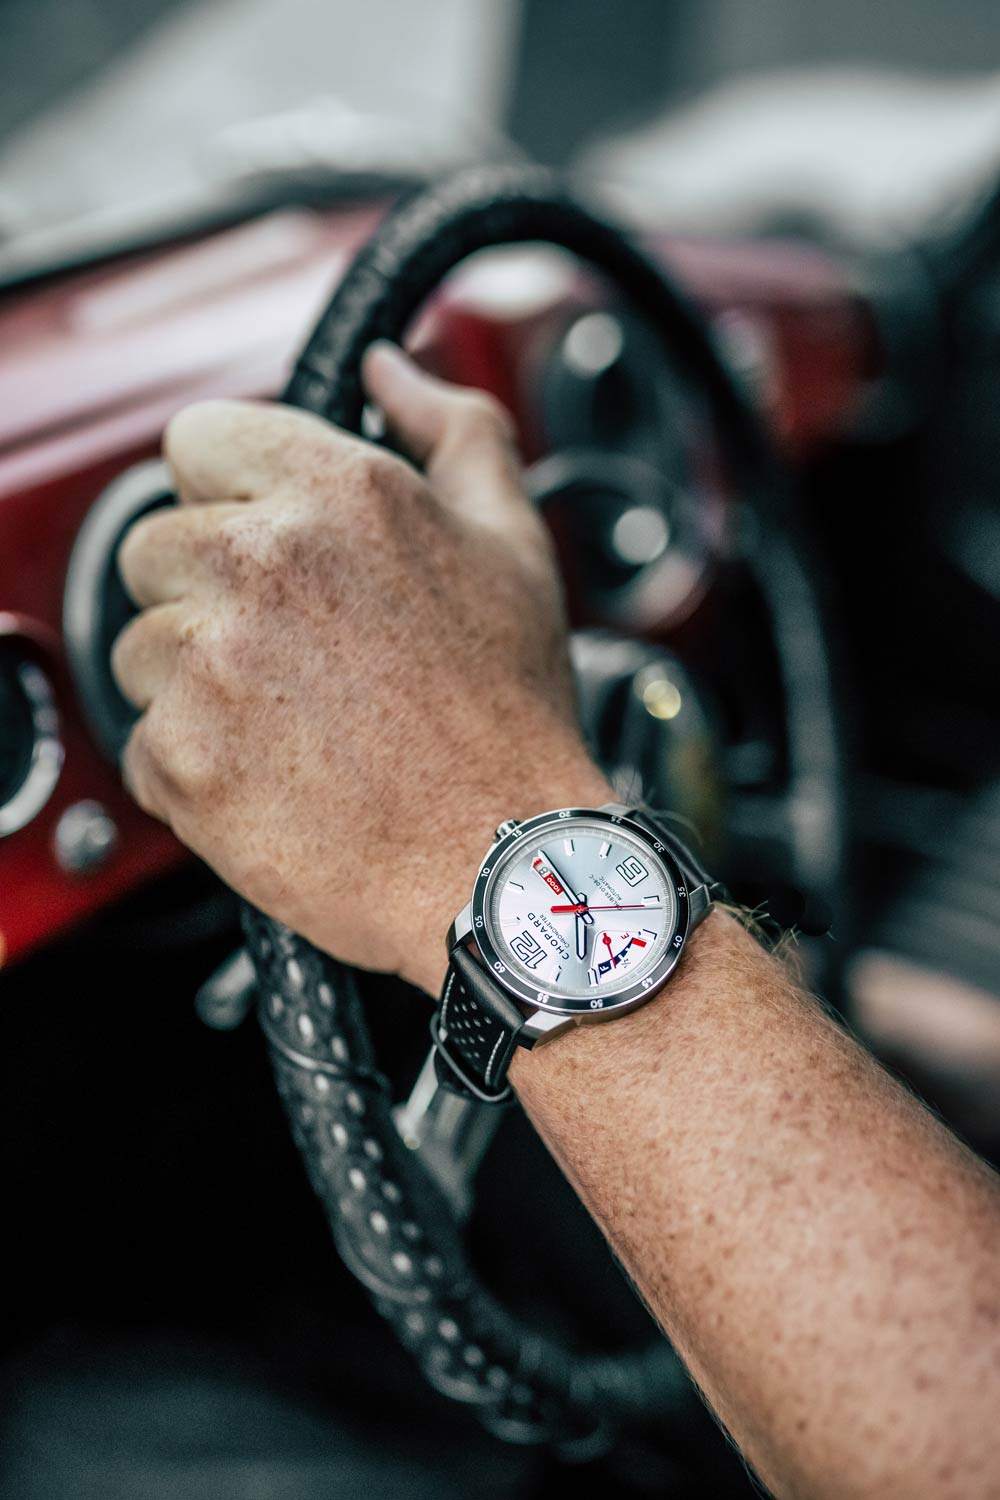 The power-reserve indicator at 9 o'clock evokes petrol gauges of the 1950s and its red white accents, the aesthetics of old dashboards.